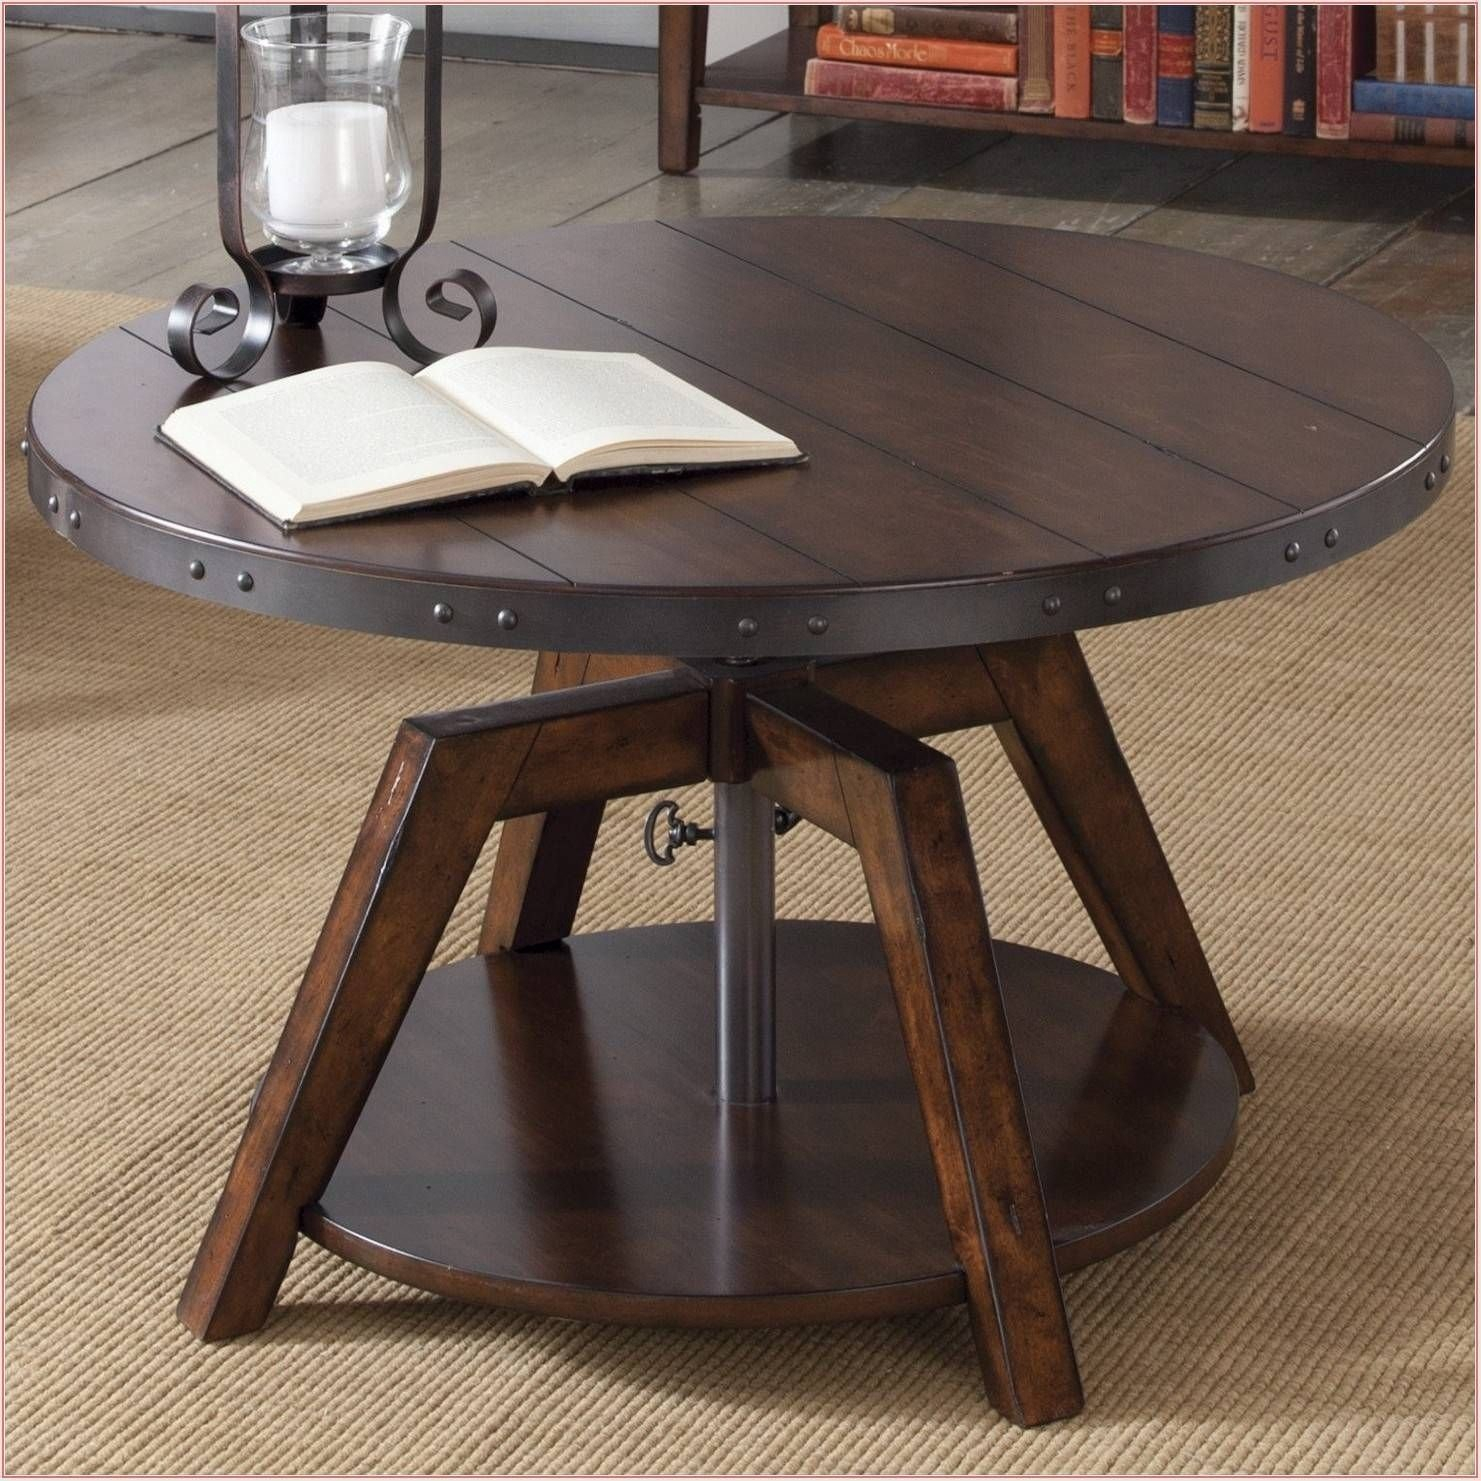 50 Amazing Convertible Coffee Table To Dining Table Up To 70 Off intended for measurements 1481 X 1481